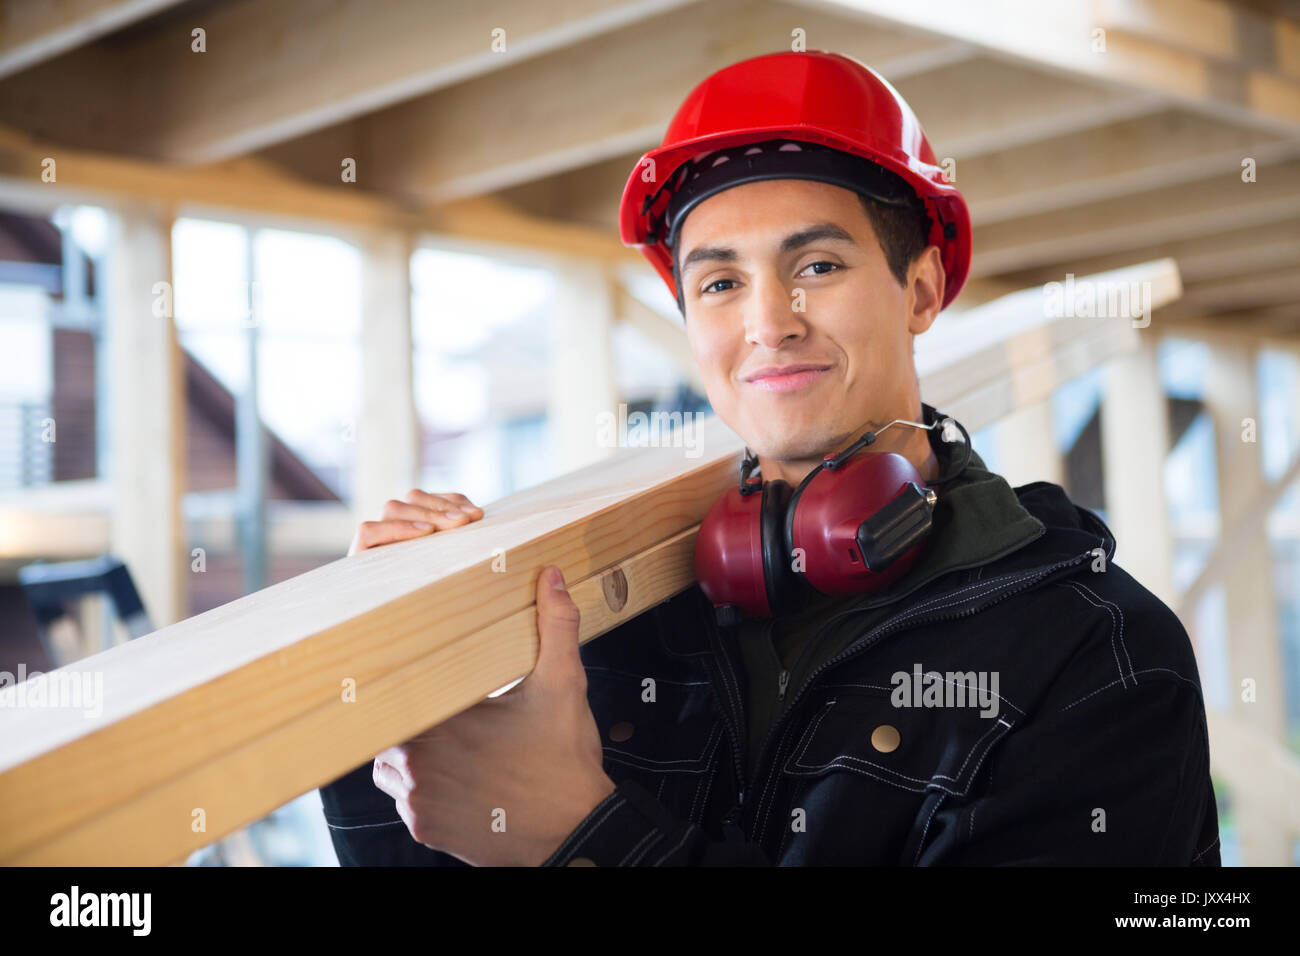 Carpenter Carrying Wood On Shoulder At Construction Site - Stock Image